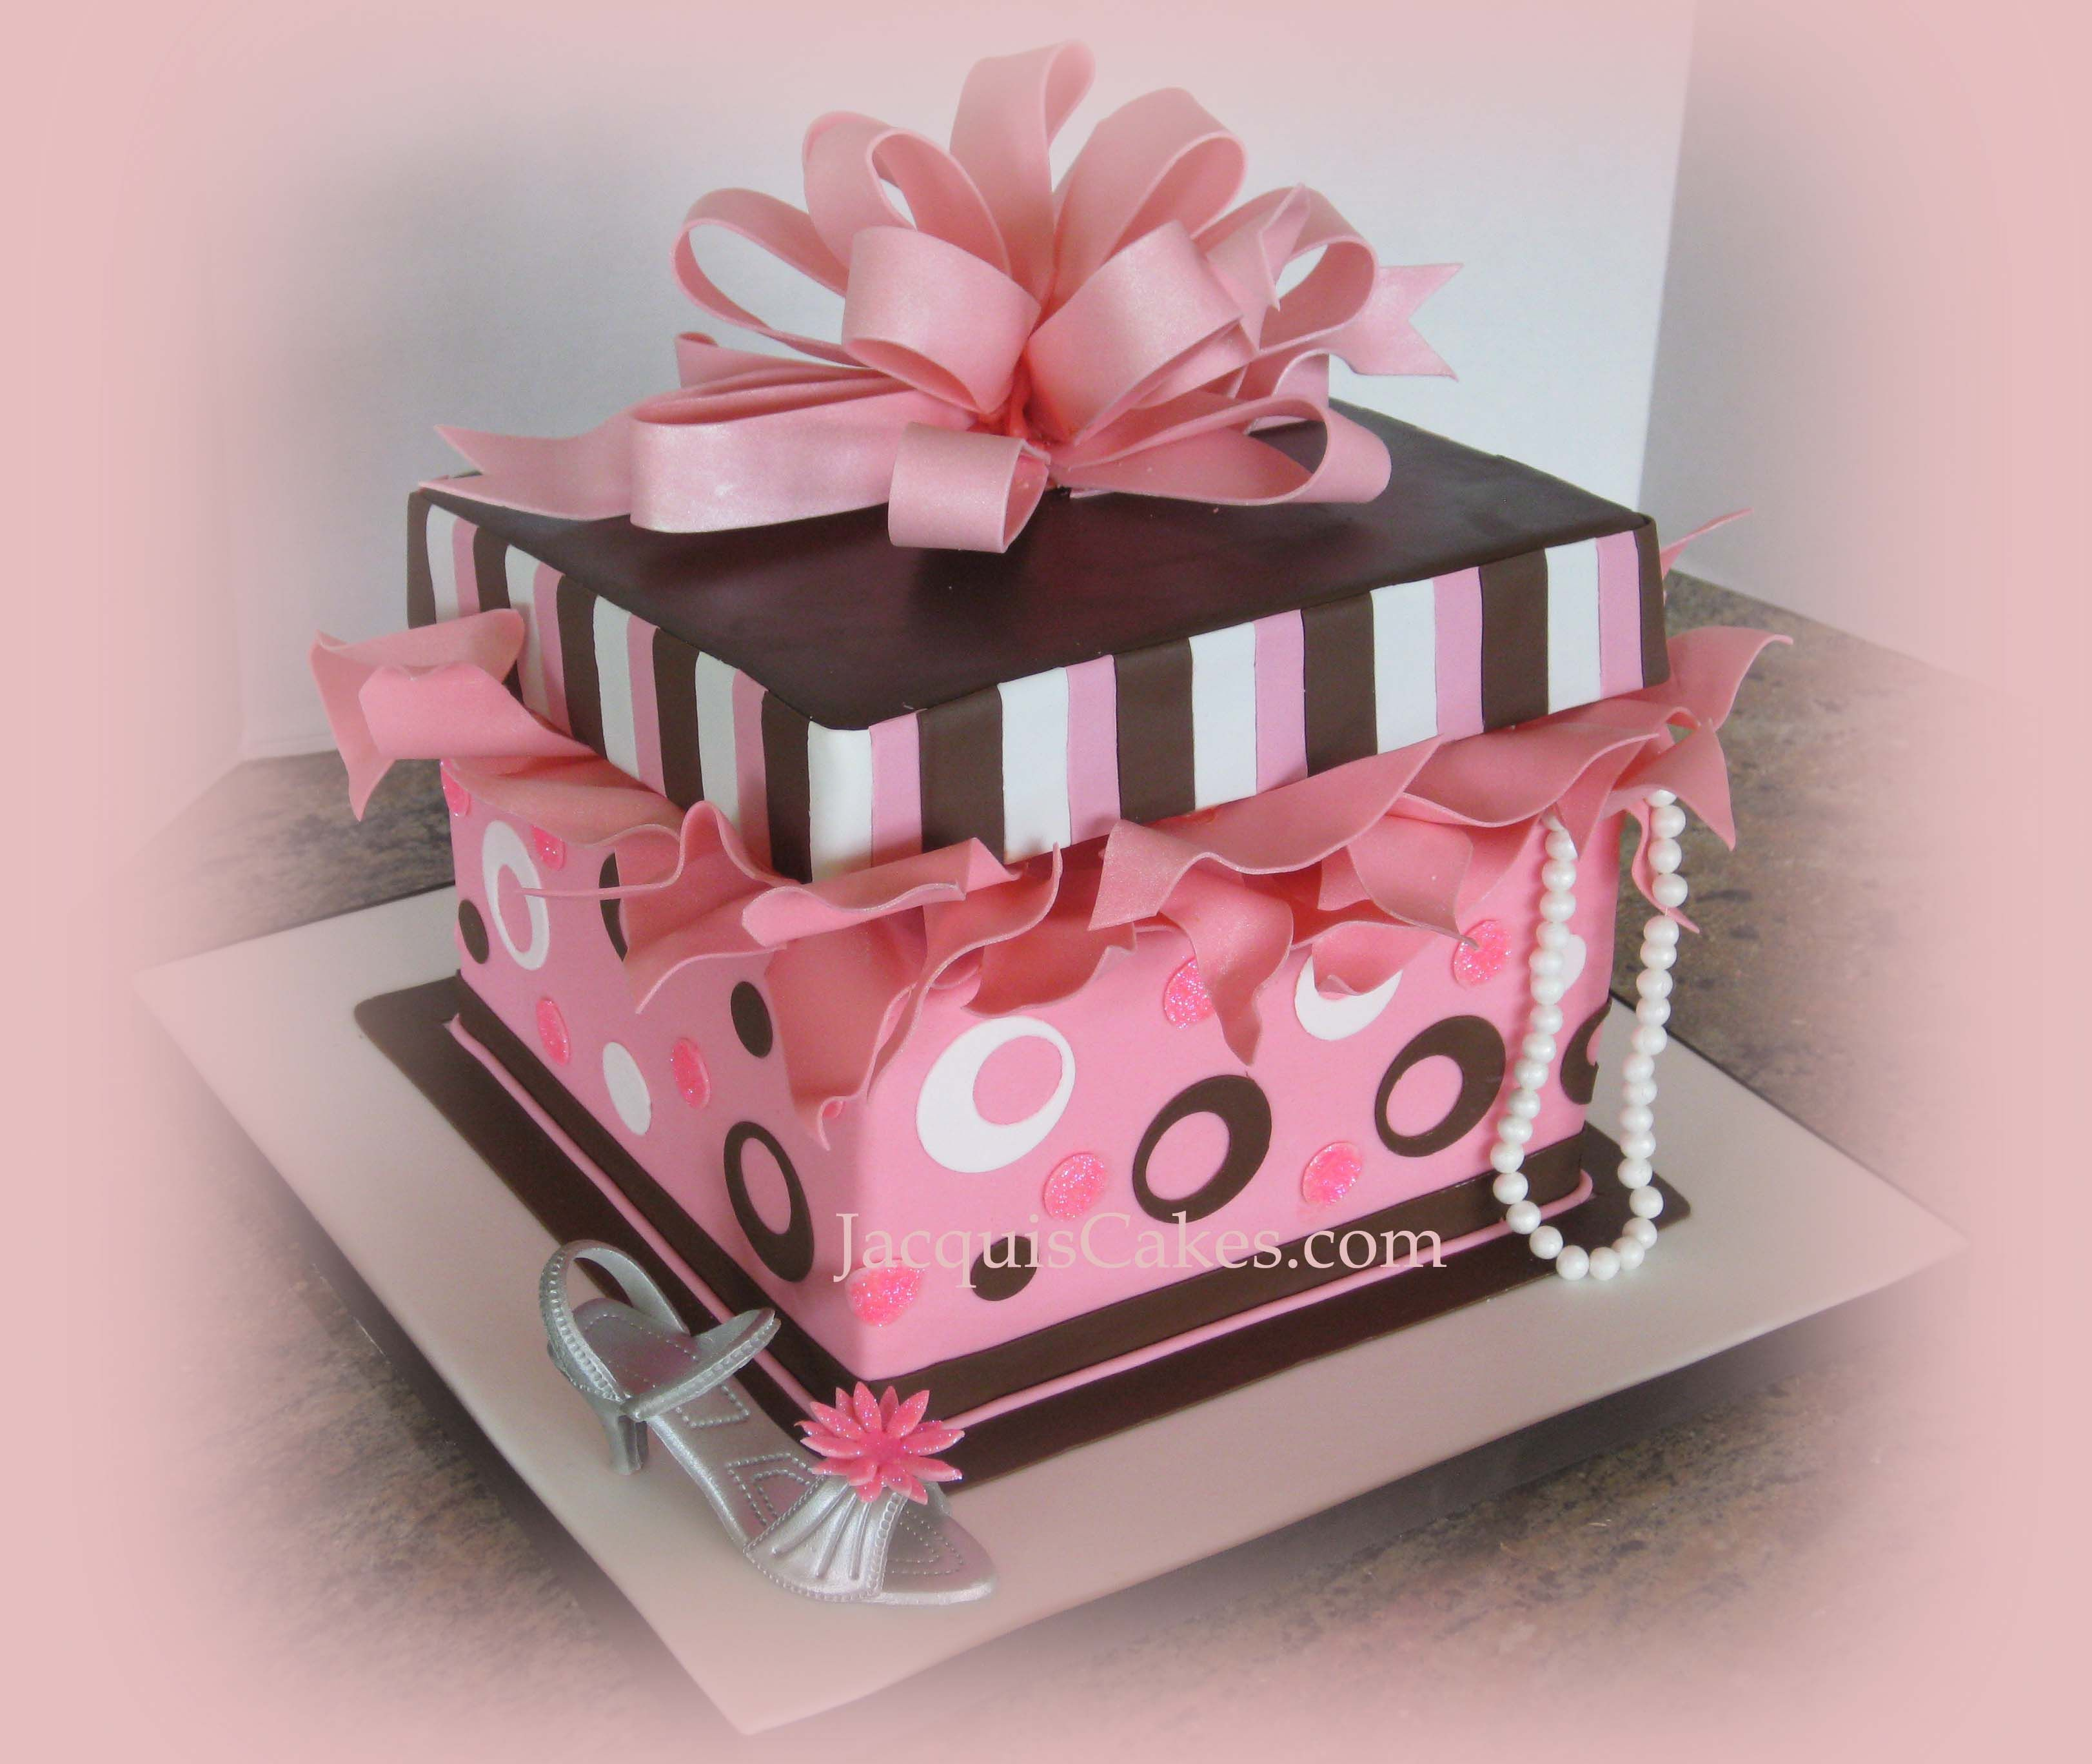 present cakes Pink and Brown Gift Box cake with High